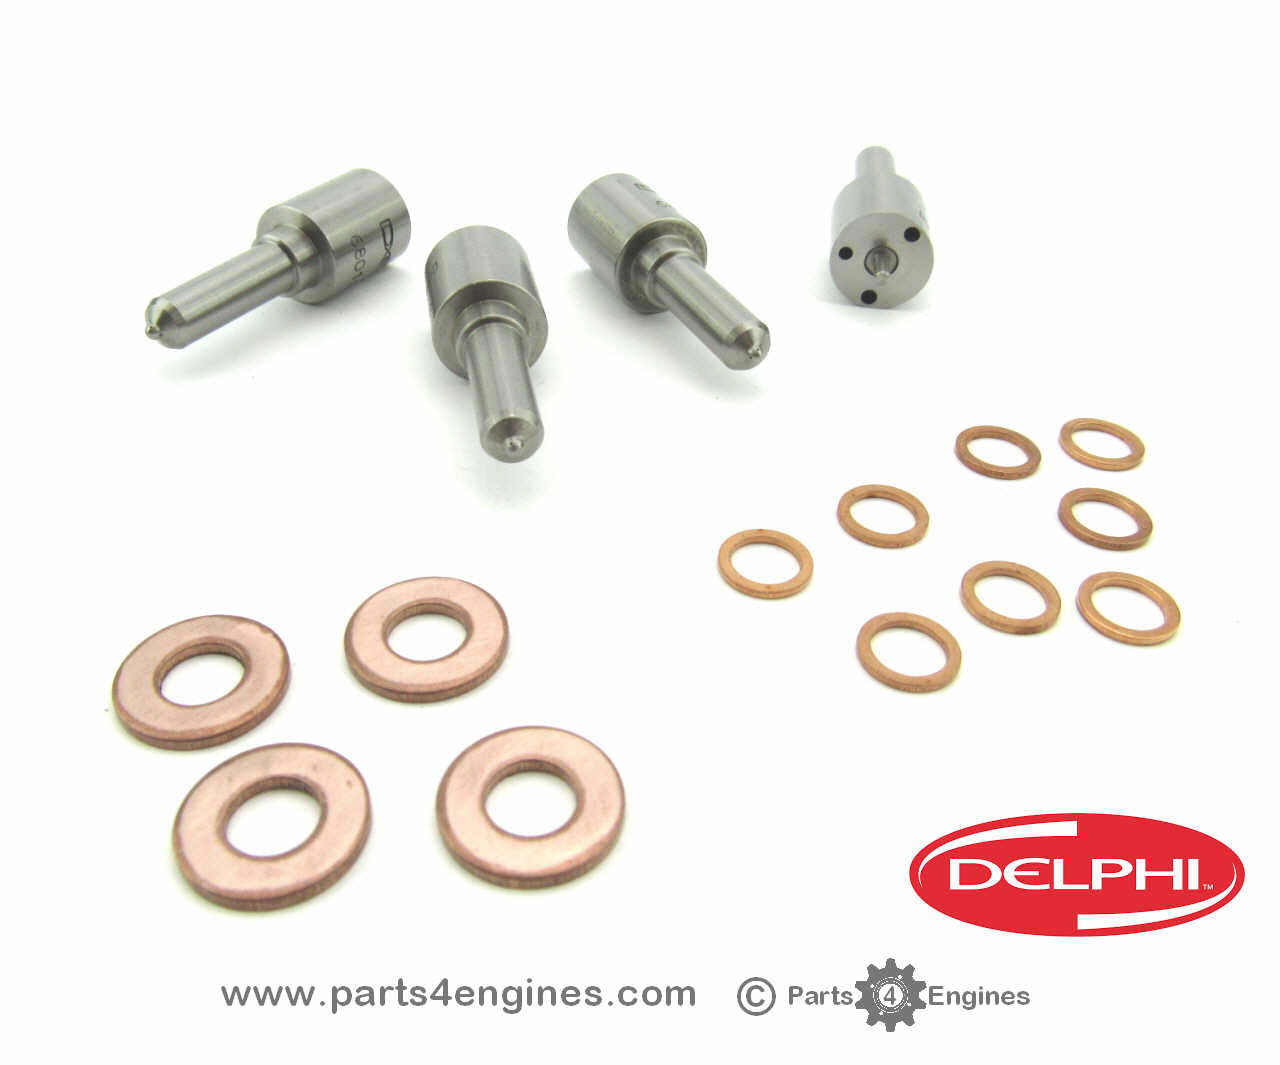 Volvo Penta TAMD22 injector nozzle set from parts4engines.com